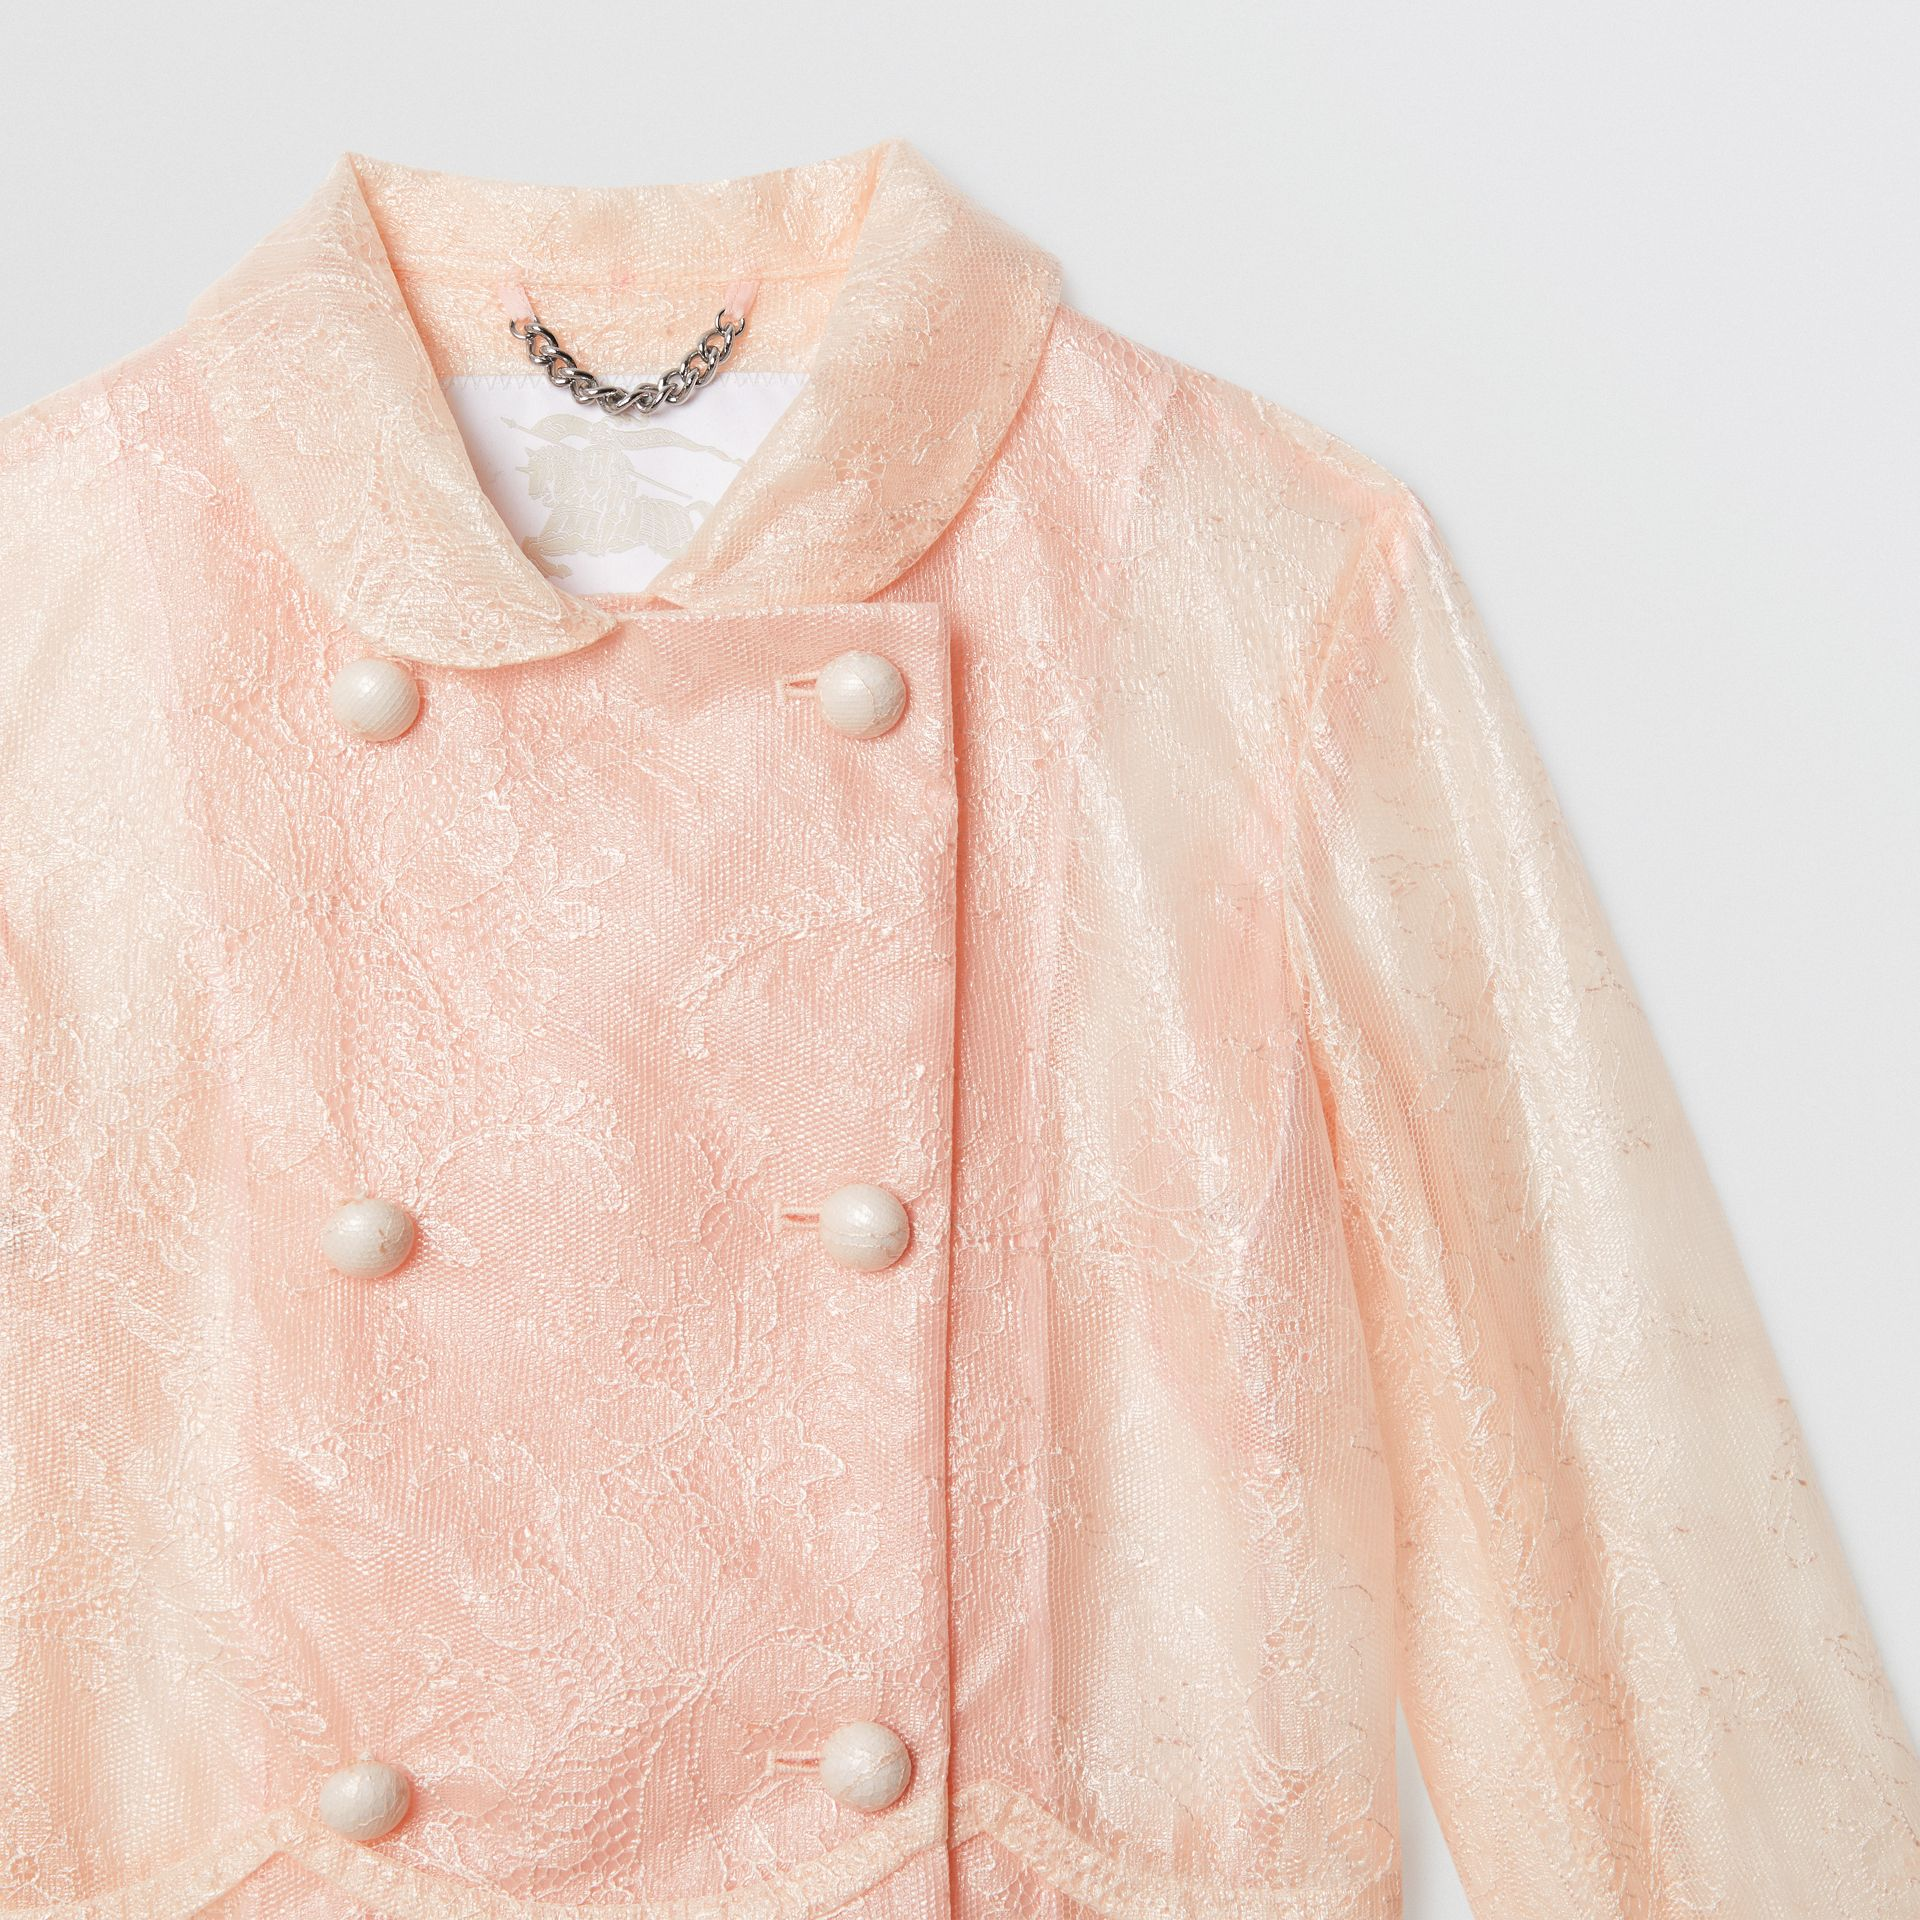 Laminated Lace Jacket in Pale Pink | Burberry - gallery image 4